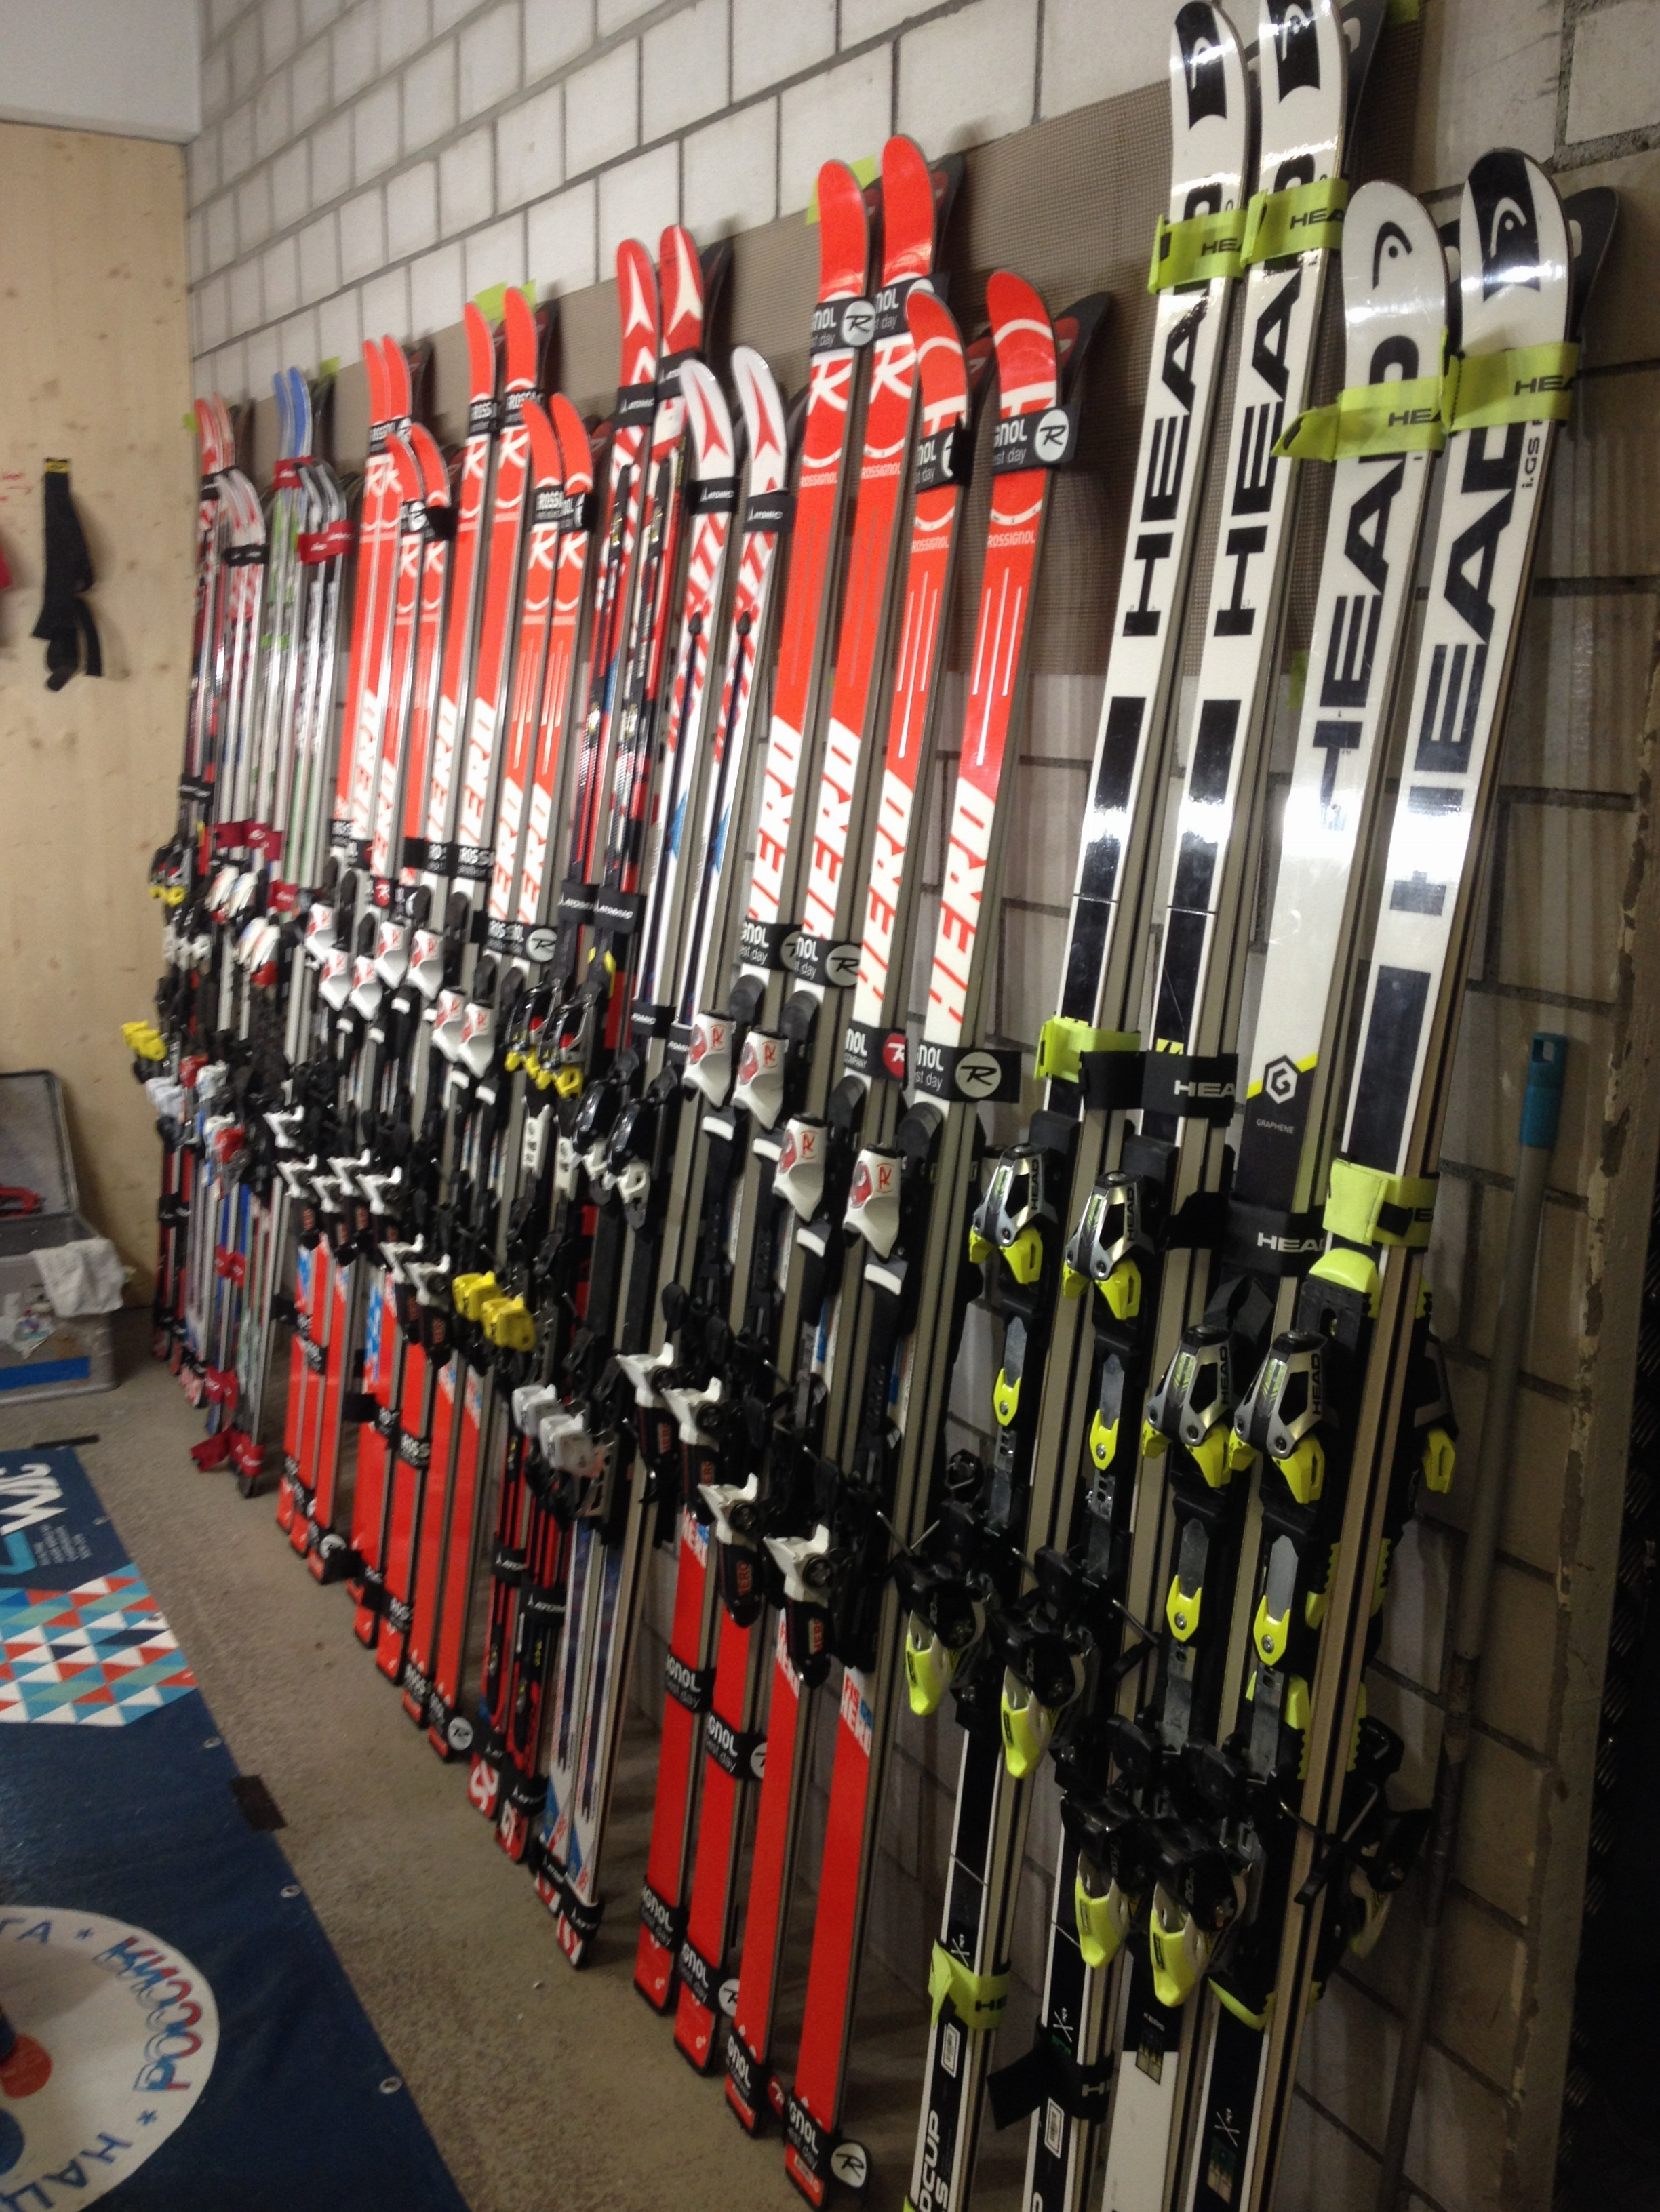 View of all the Super G and Giant Slalom skis used by the team.